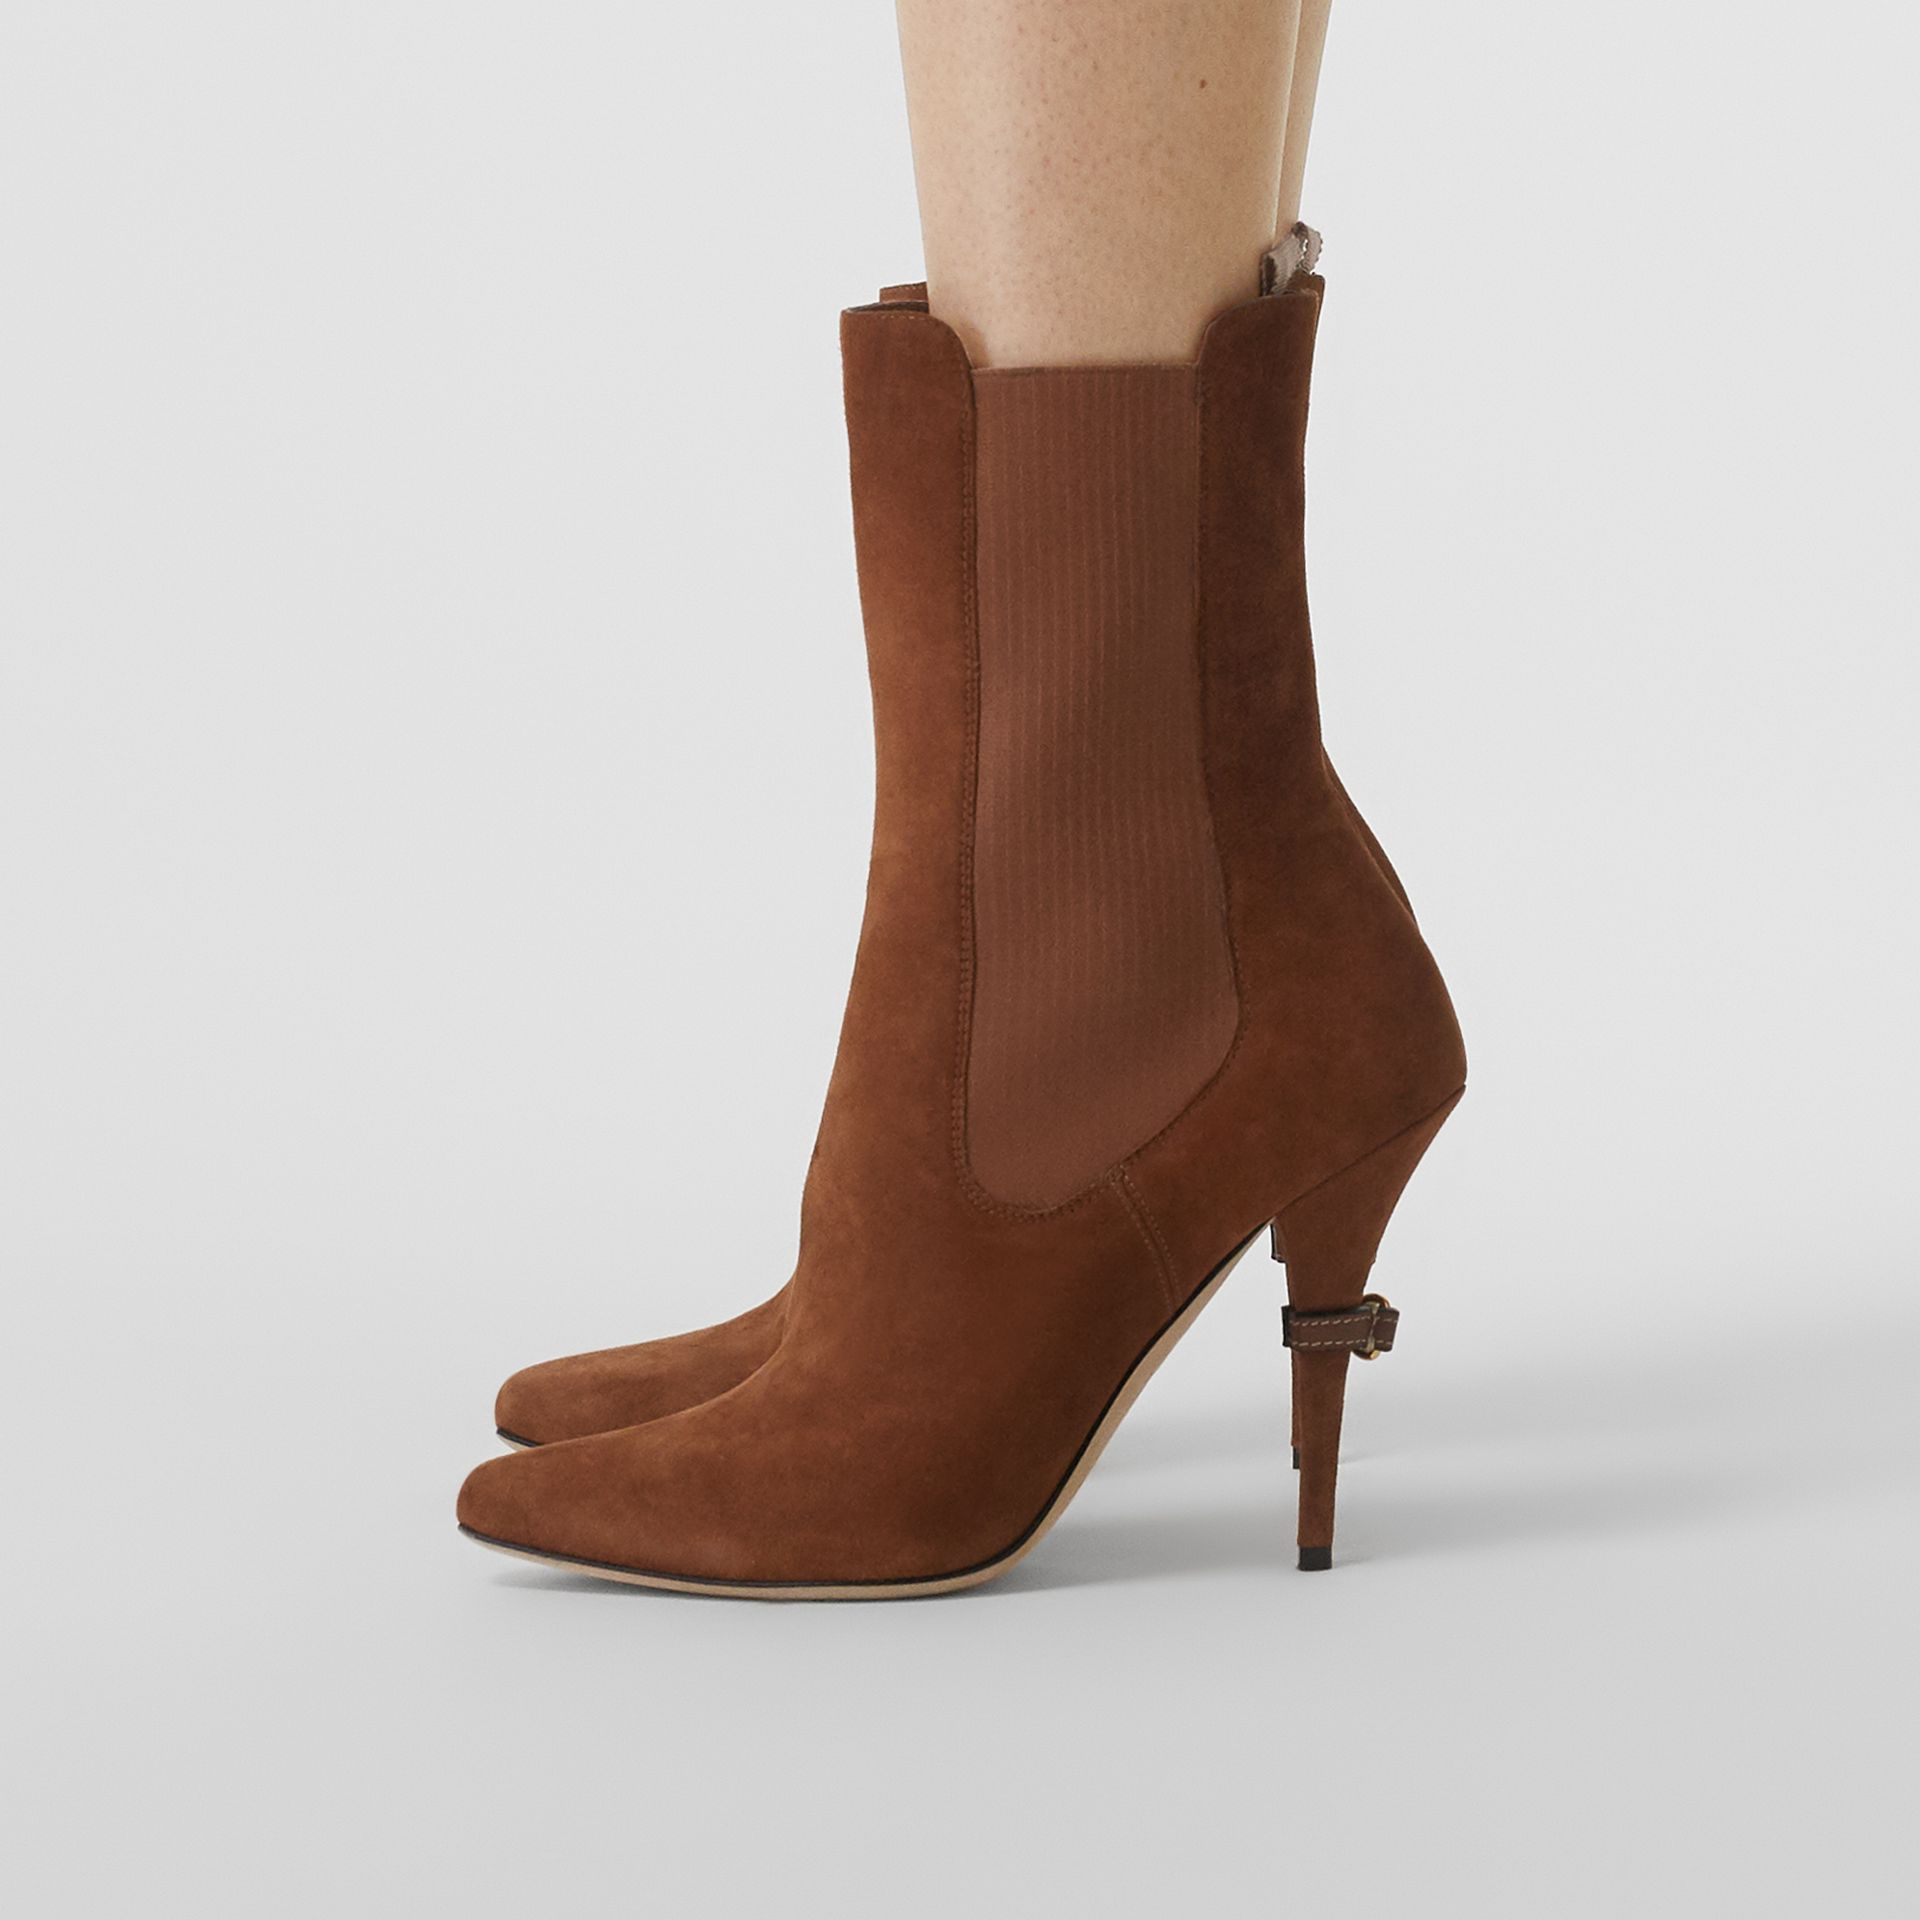 D-ring Detail Suede Ankle Boots in Tan - Women | Burberry Singapore - gallery image 2